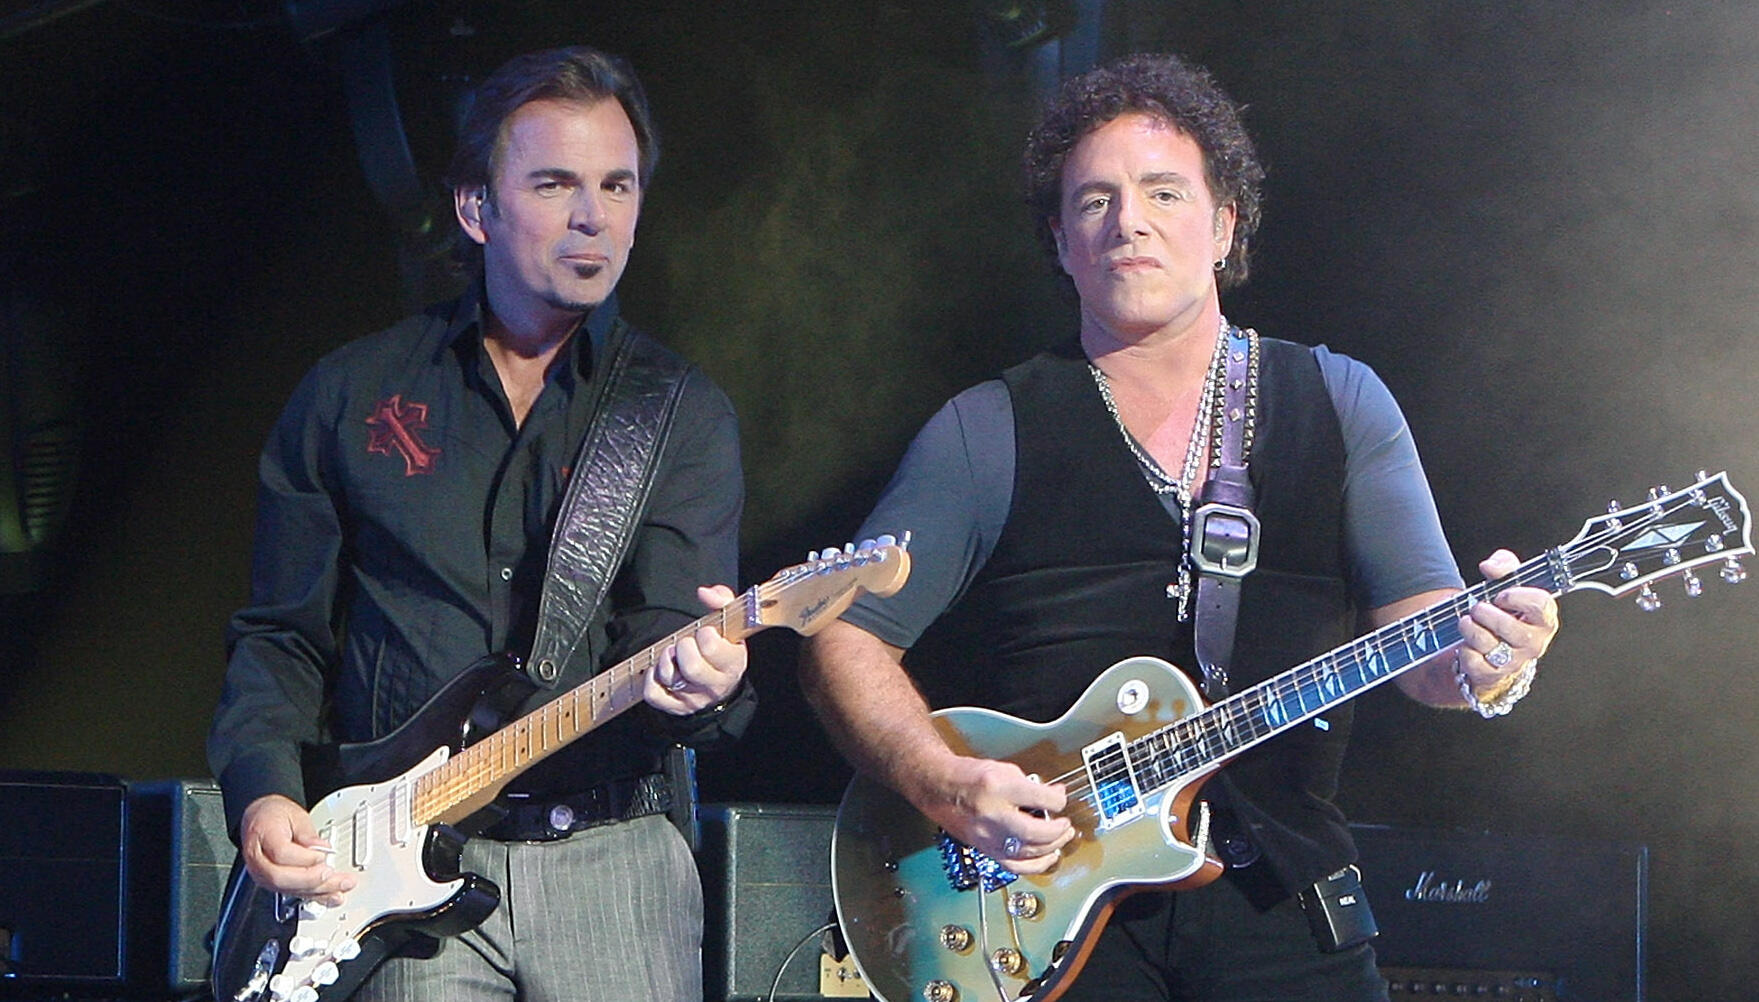 Journey's Neal Schon, Jonathan Cain Aligned Again After Bitter Public Feud